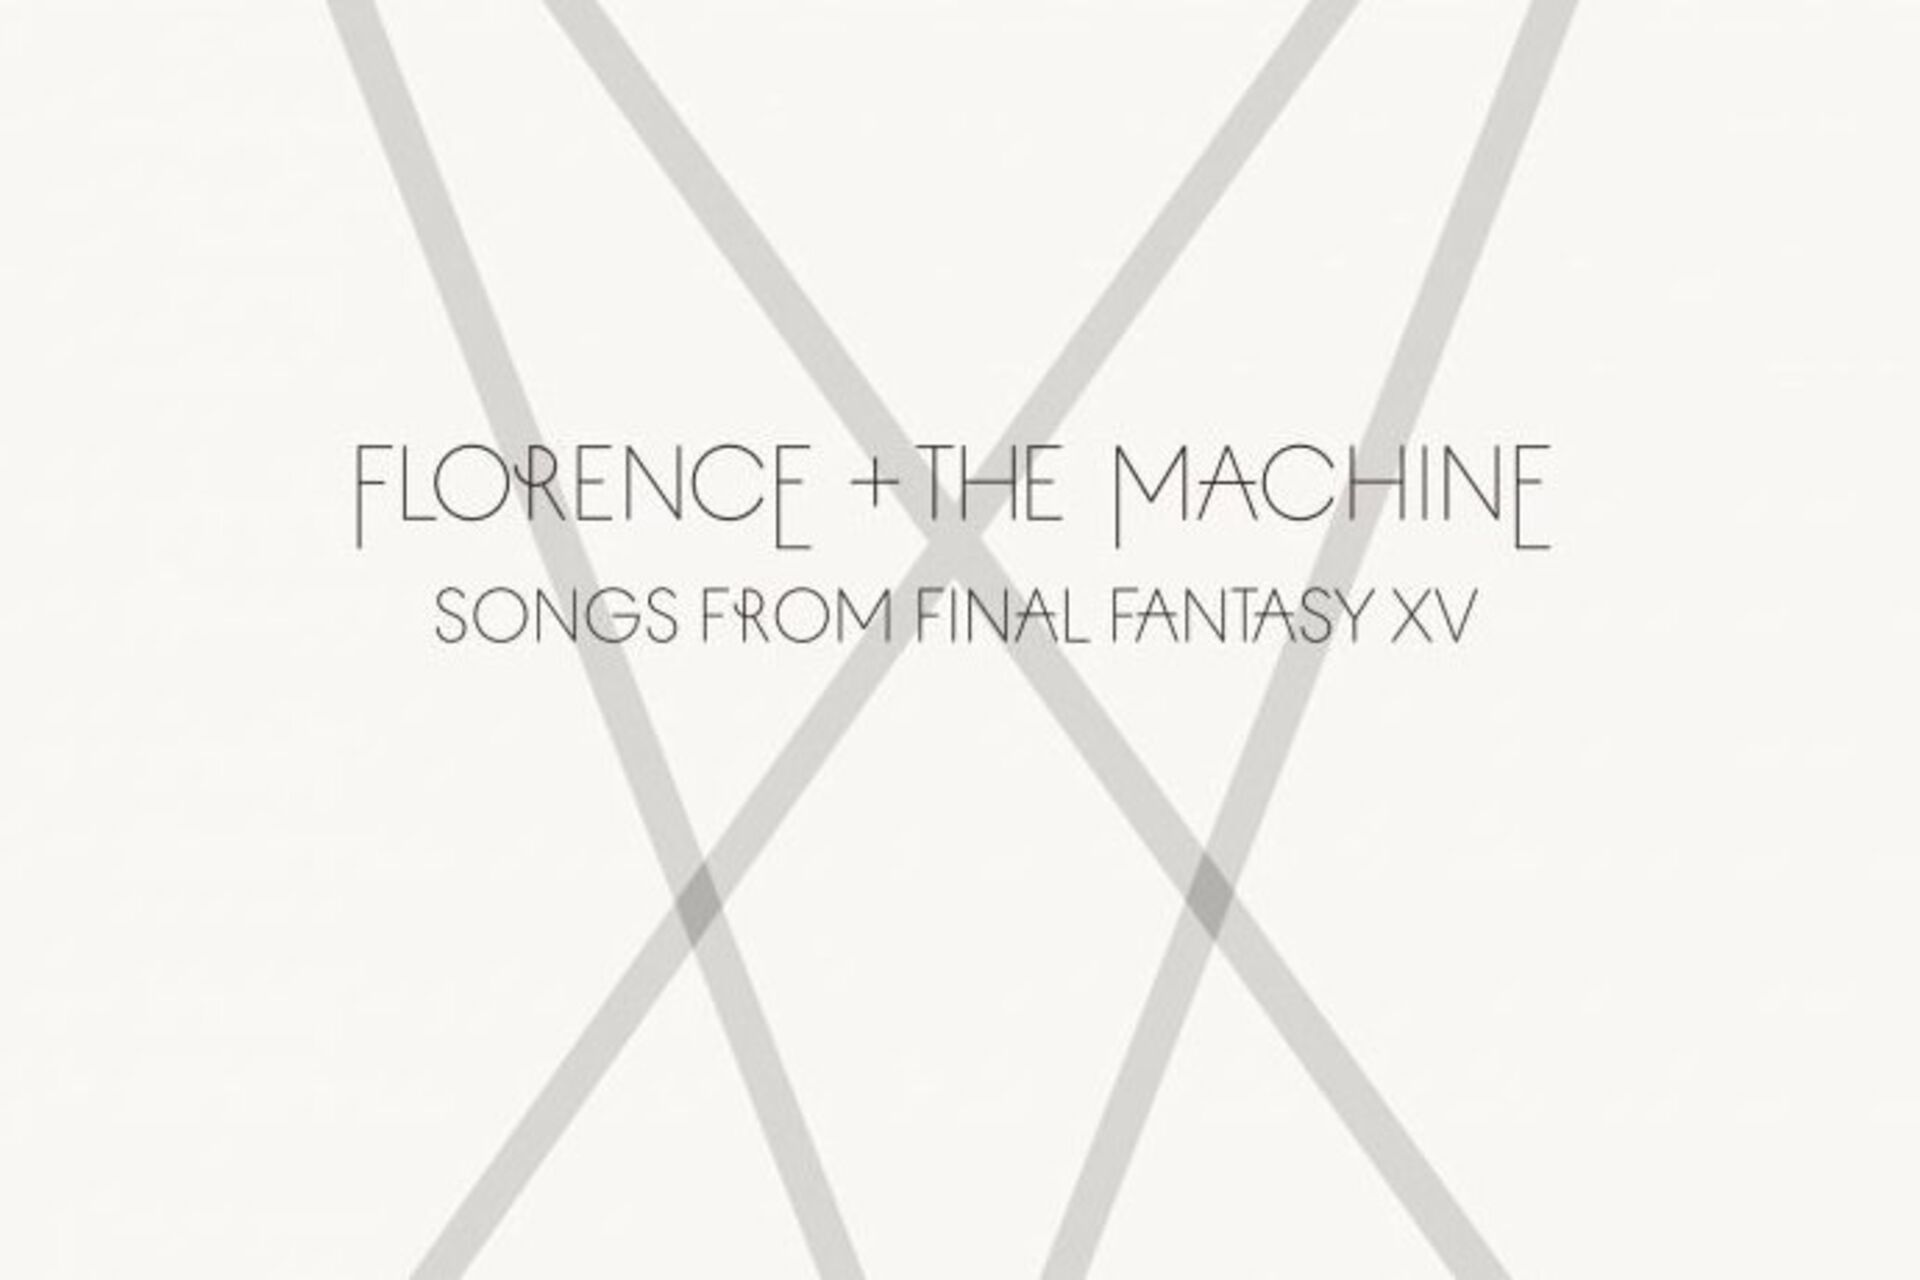 Florence + the Machine made some Final Fantasy 15 songs